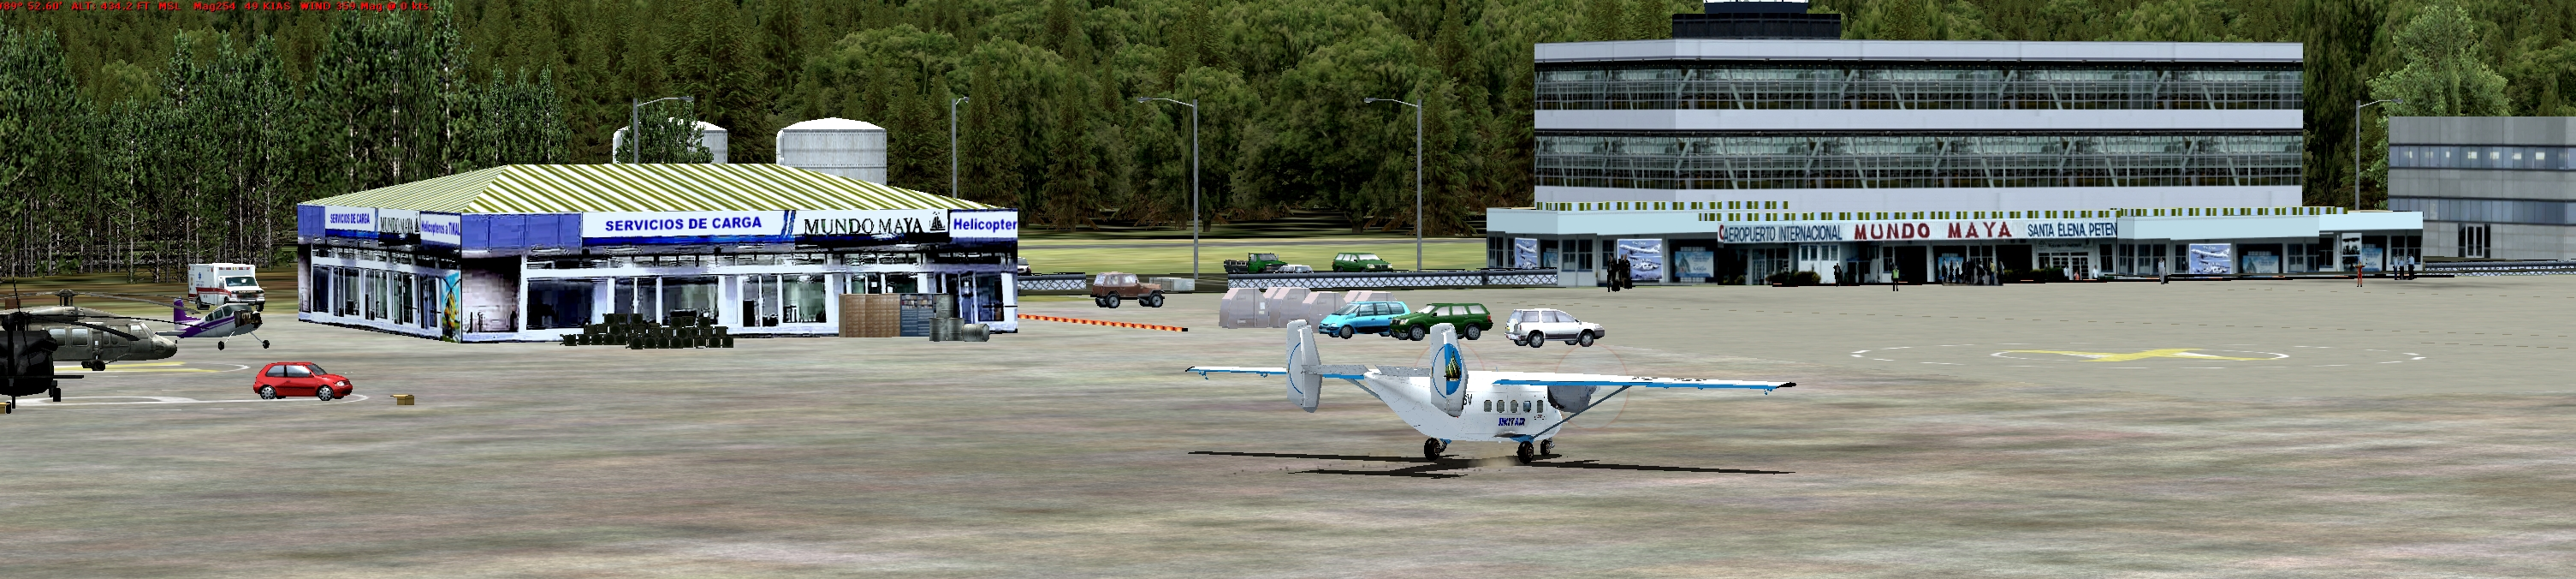 Rolling Cumulus - Guatemala Flights for FSX and P3Dv4